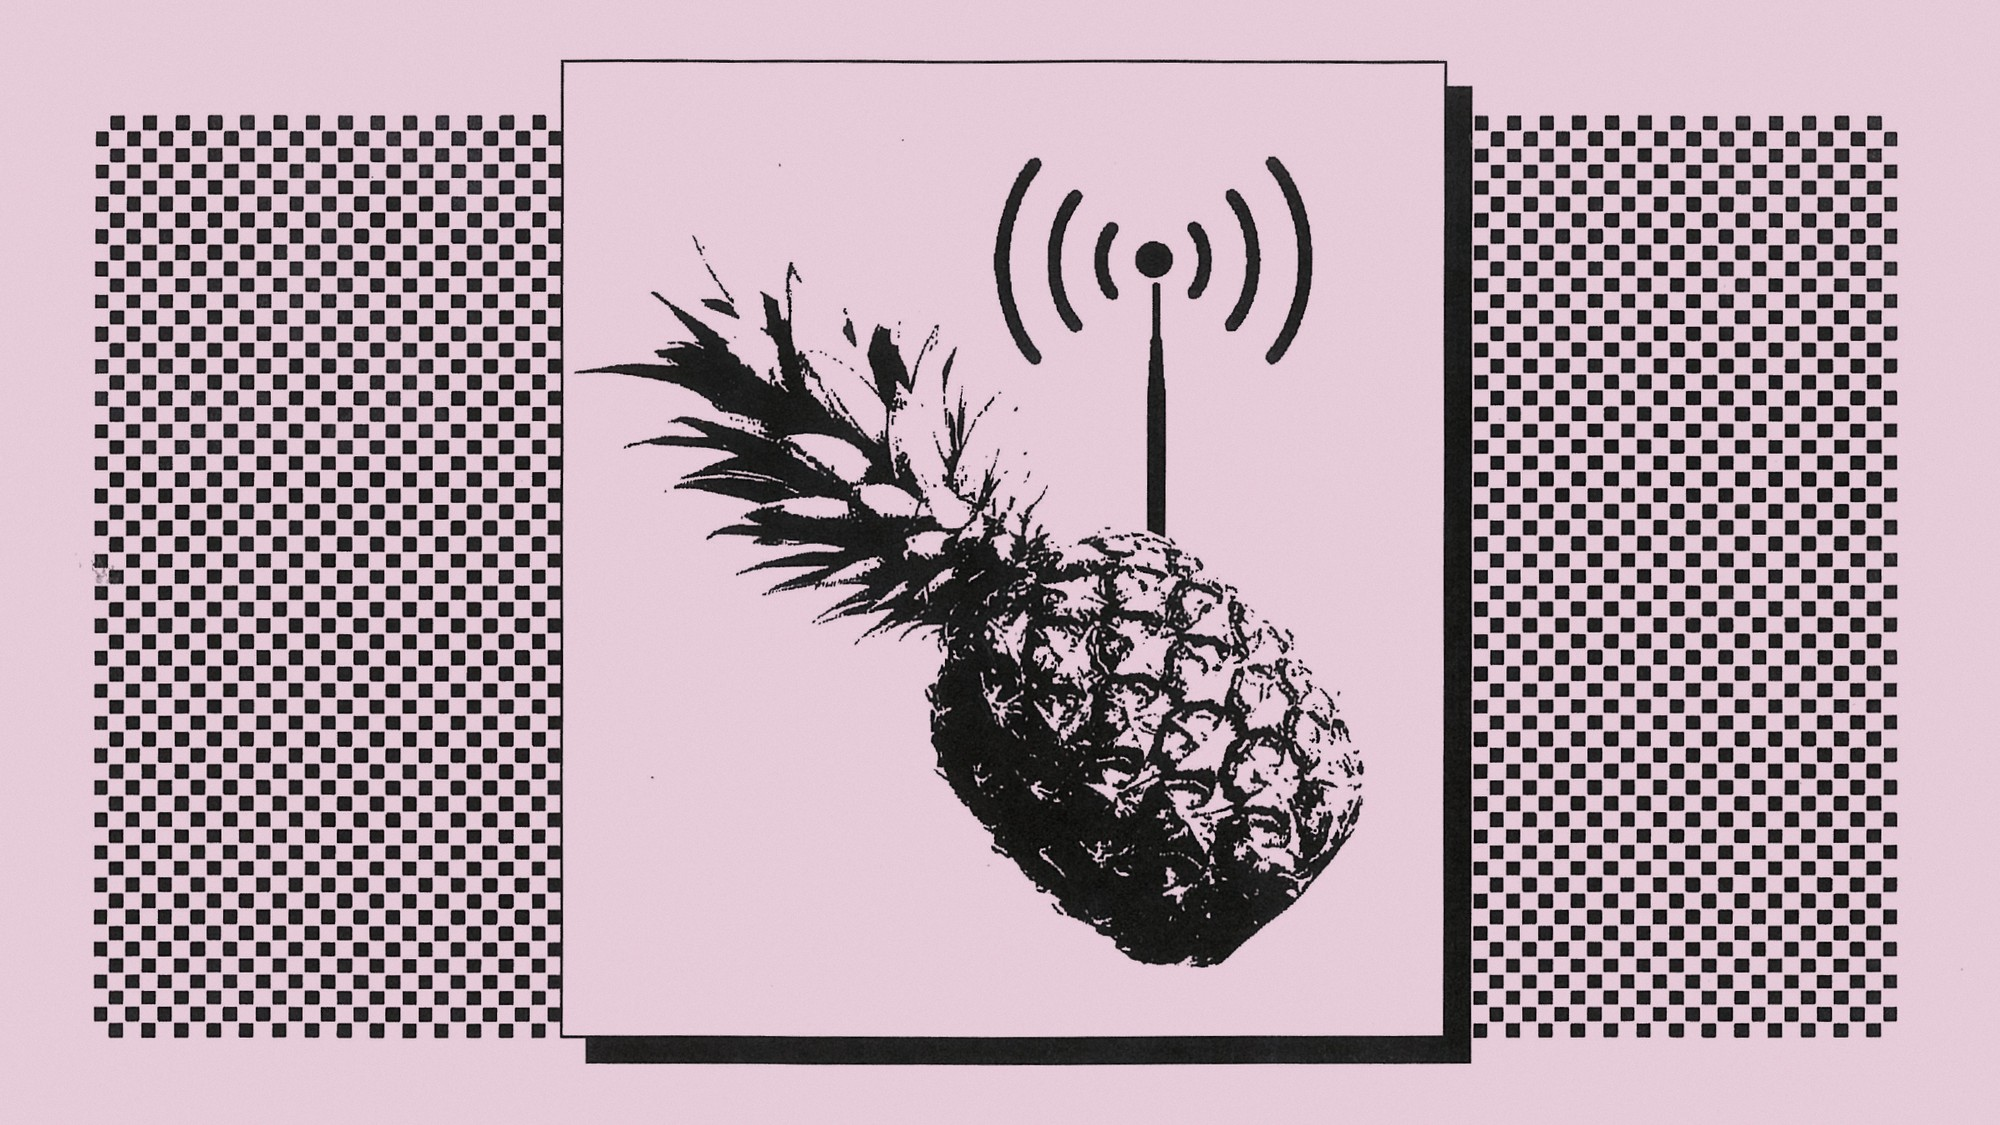 How a Wi-Fi Pineapple Can Steal Your Data (And How to